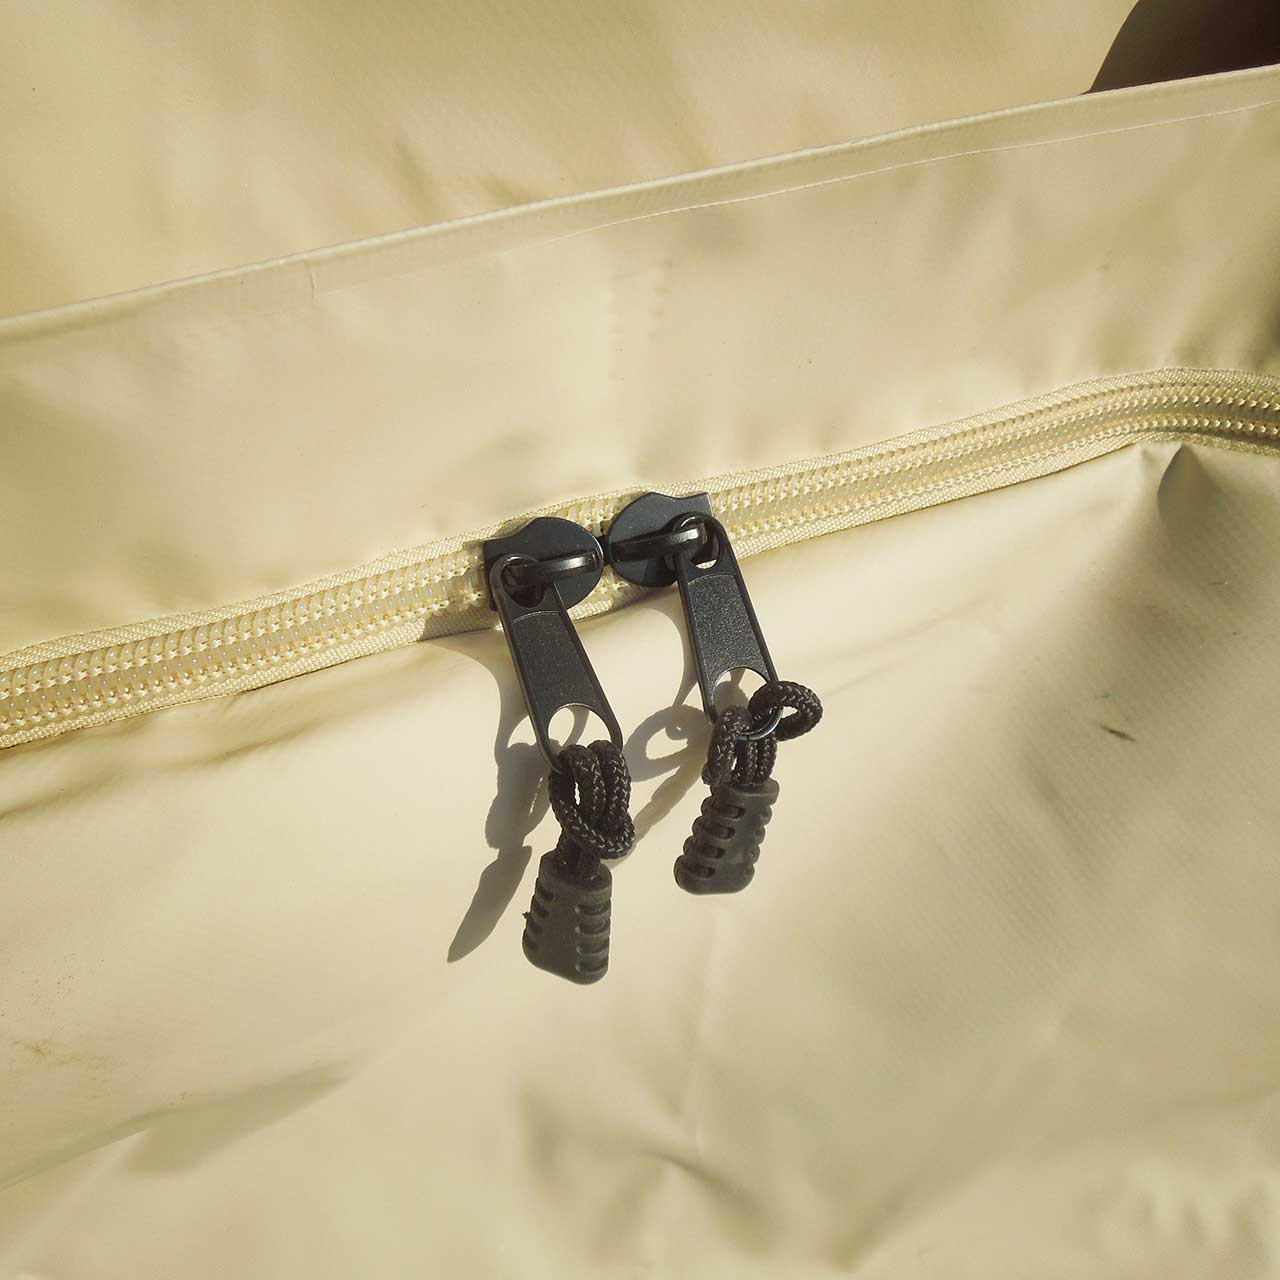 The waterproof khaki tuff truck bag's heavy duty zipper that opens on the end to load cargo and luggage into the bag to keep items dry and protected